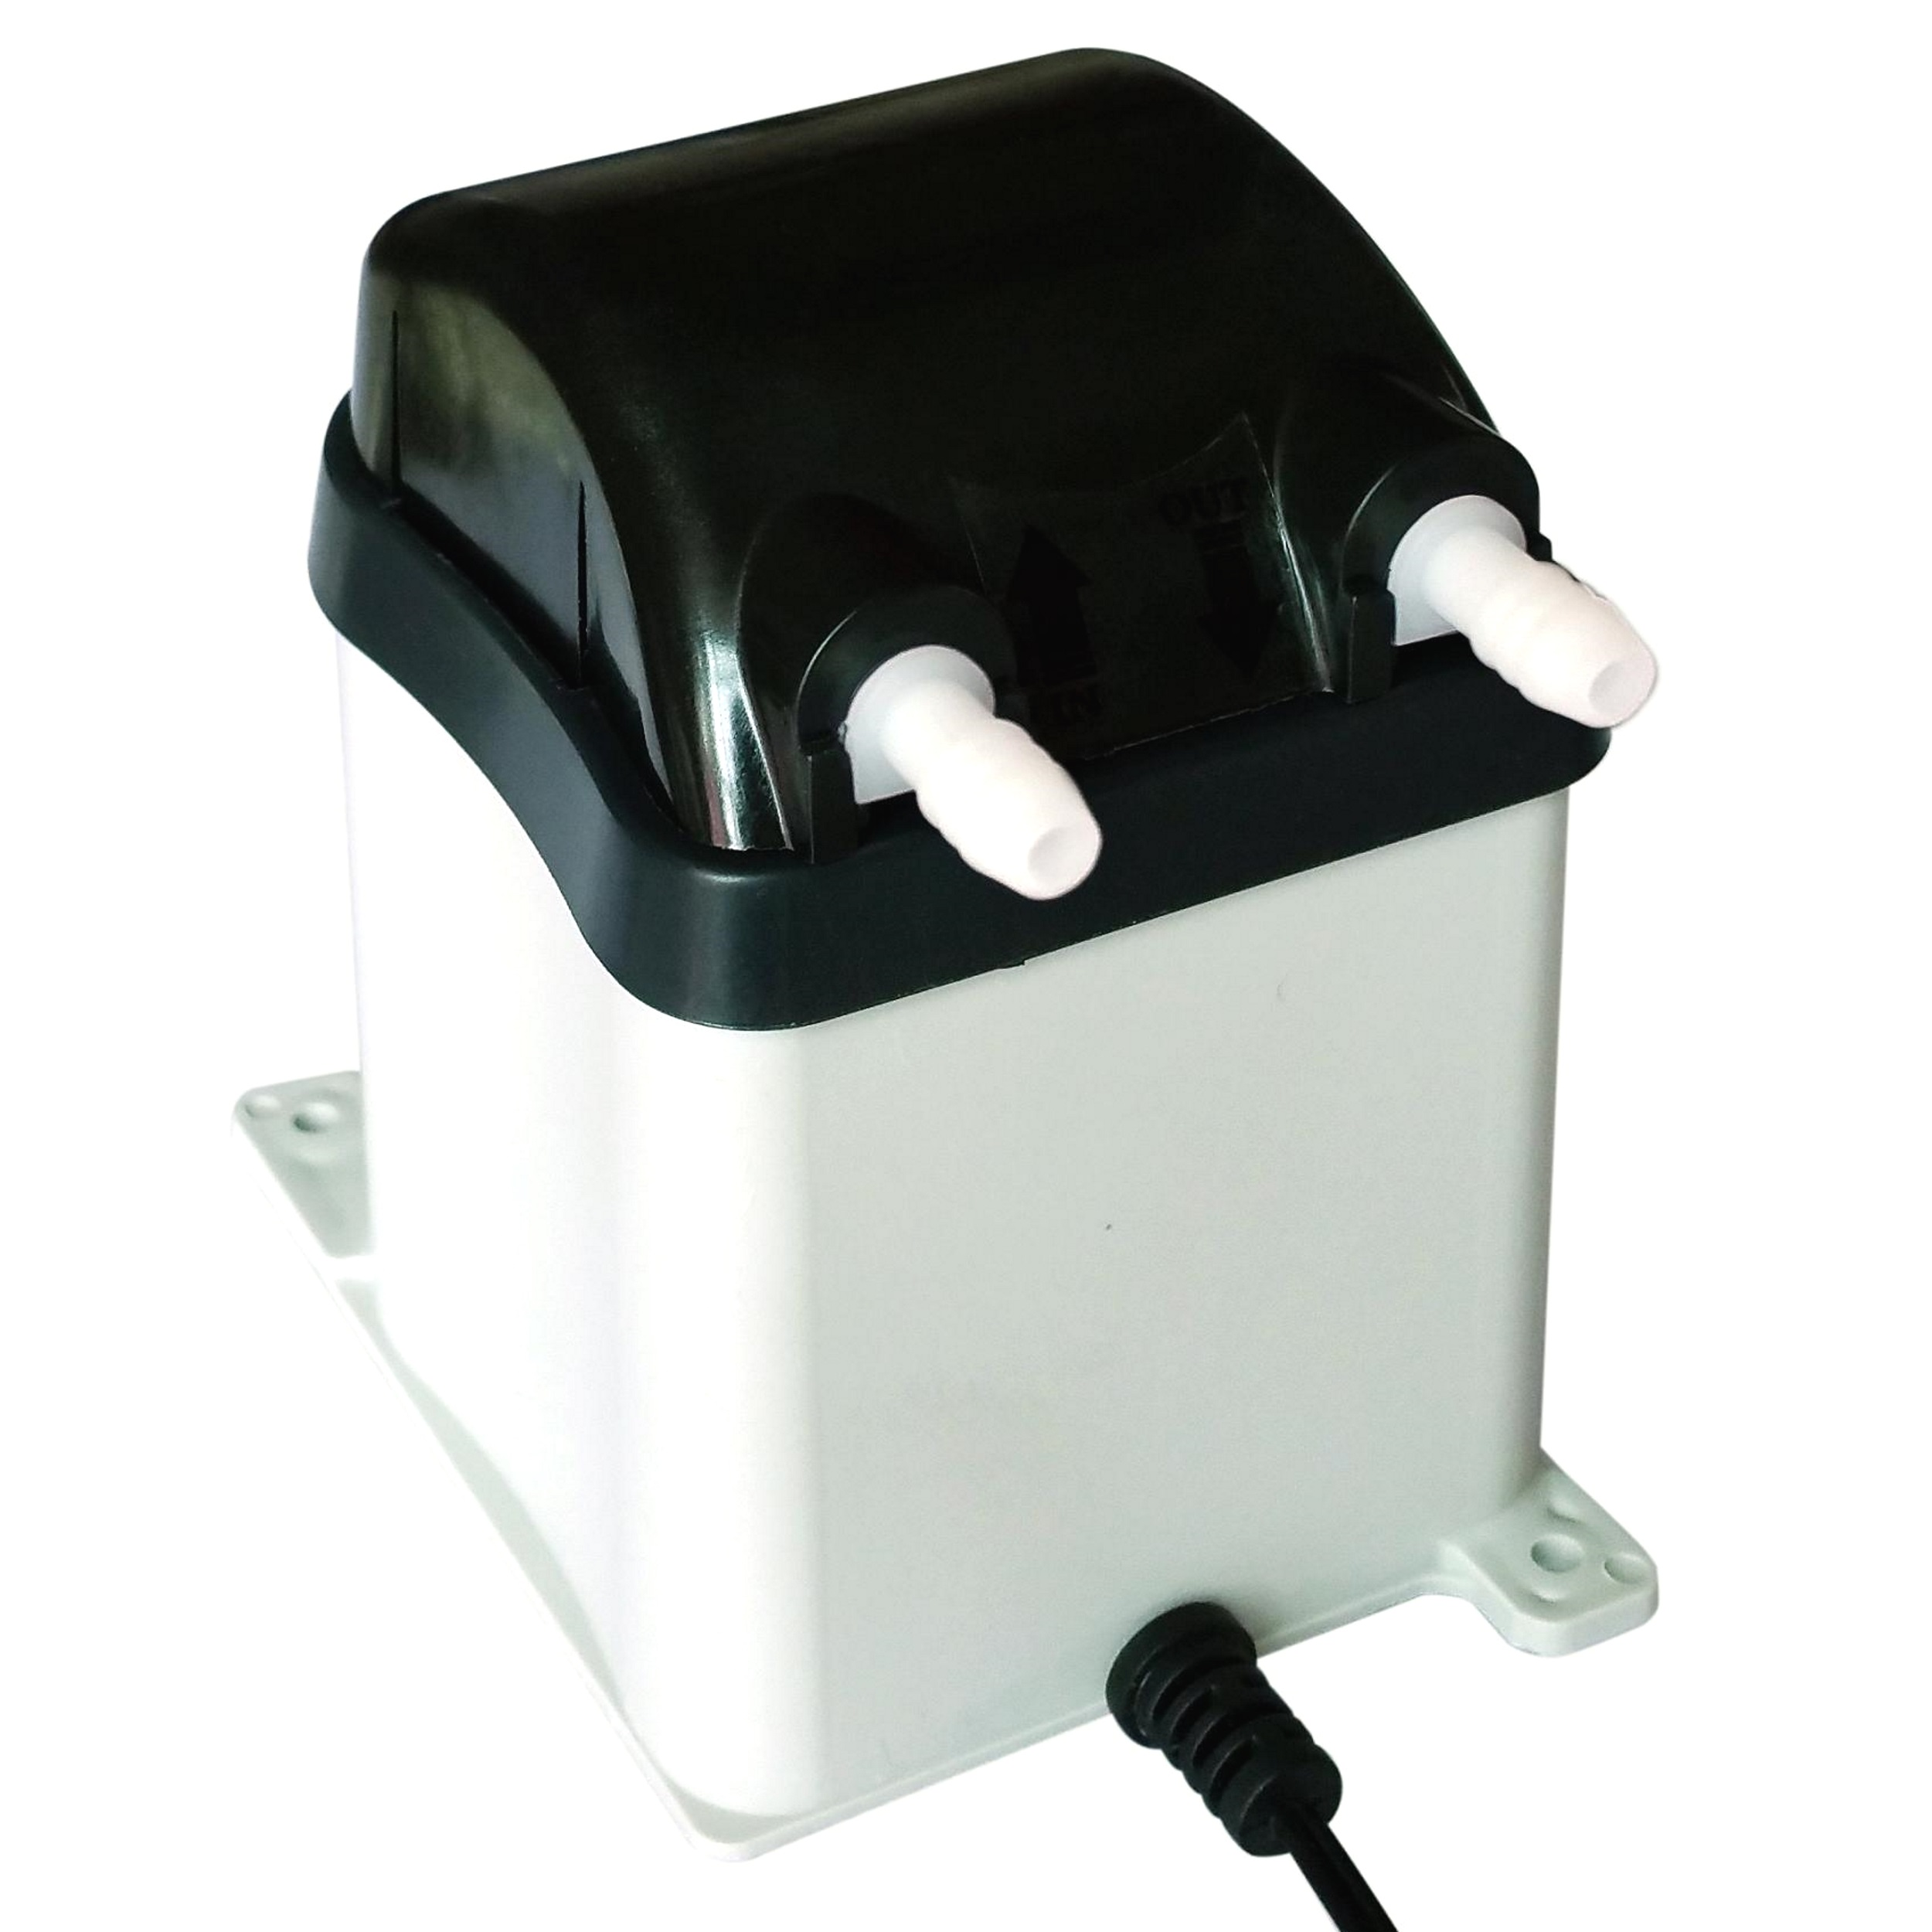 800ml/min, 2 Rollers, Honlite 12V Peristaltic Pump with Enhanced-Exchangeable Pump Head and PharMed BPT Peristaltic Tube